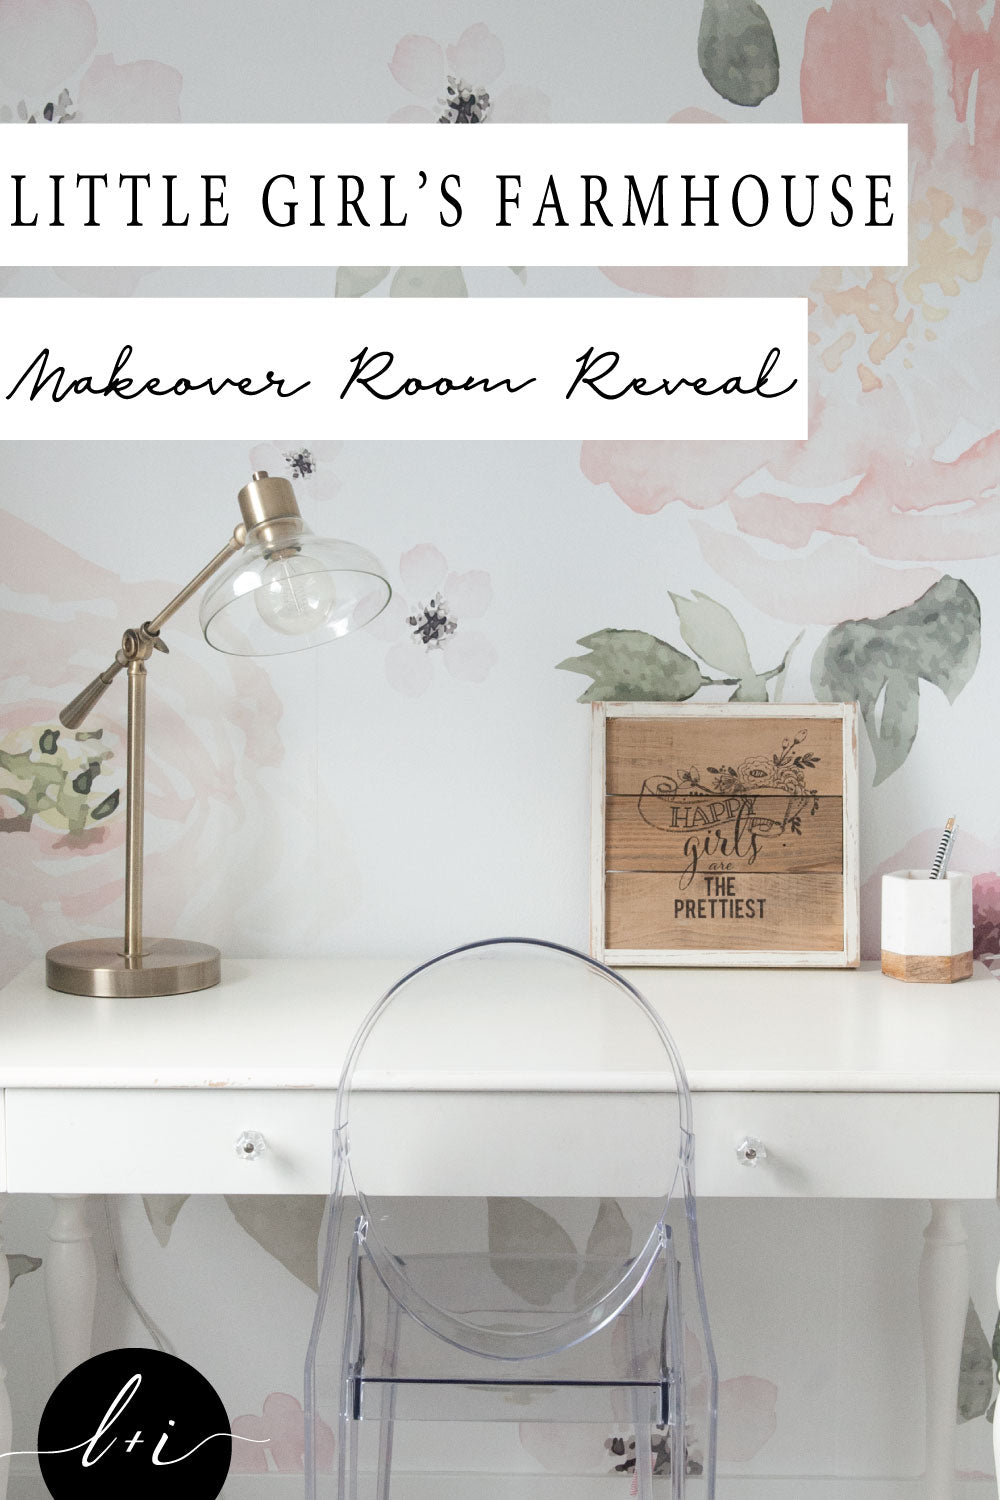 Little Girl's Farmhouse Bedroom Reveal